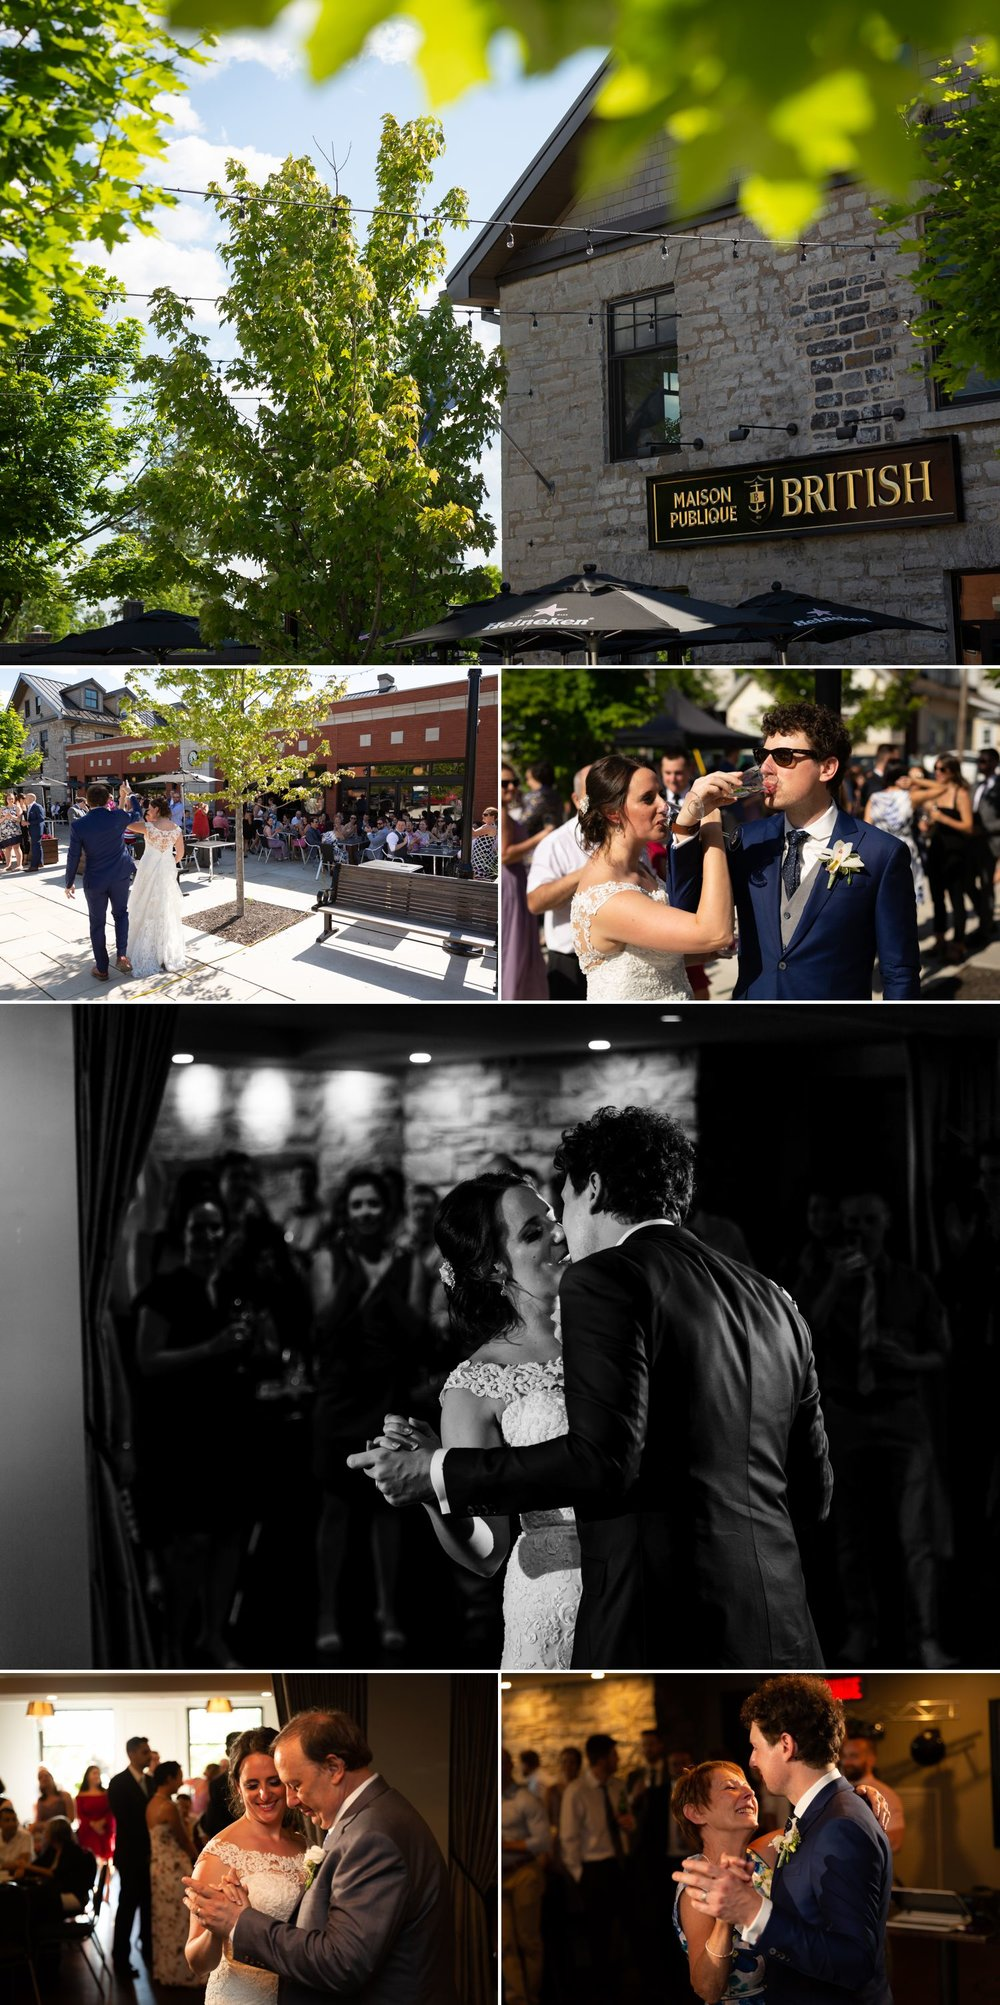 A wedding reception taking place at The British Hotel in Gatineau, Quebec